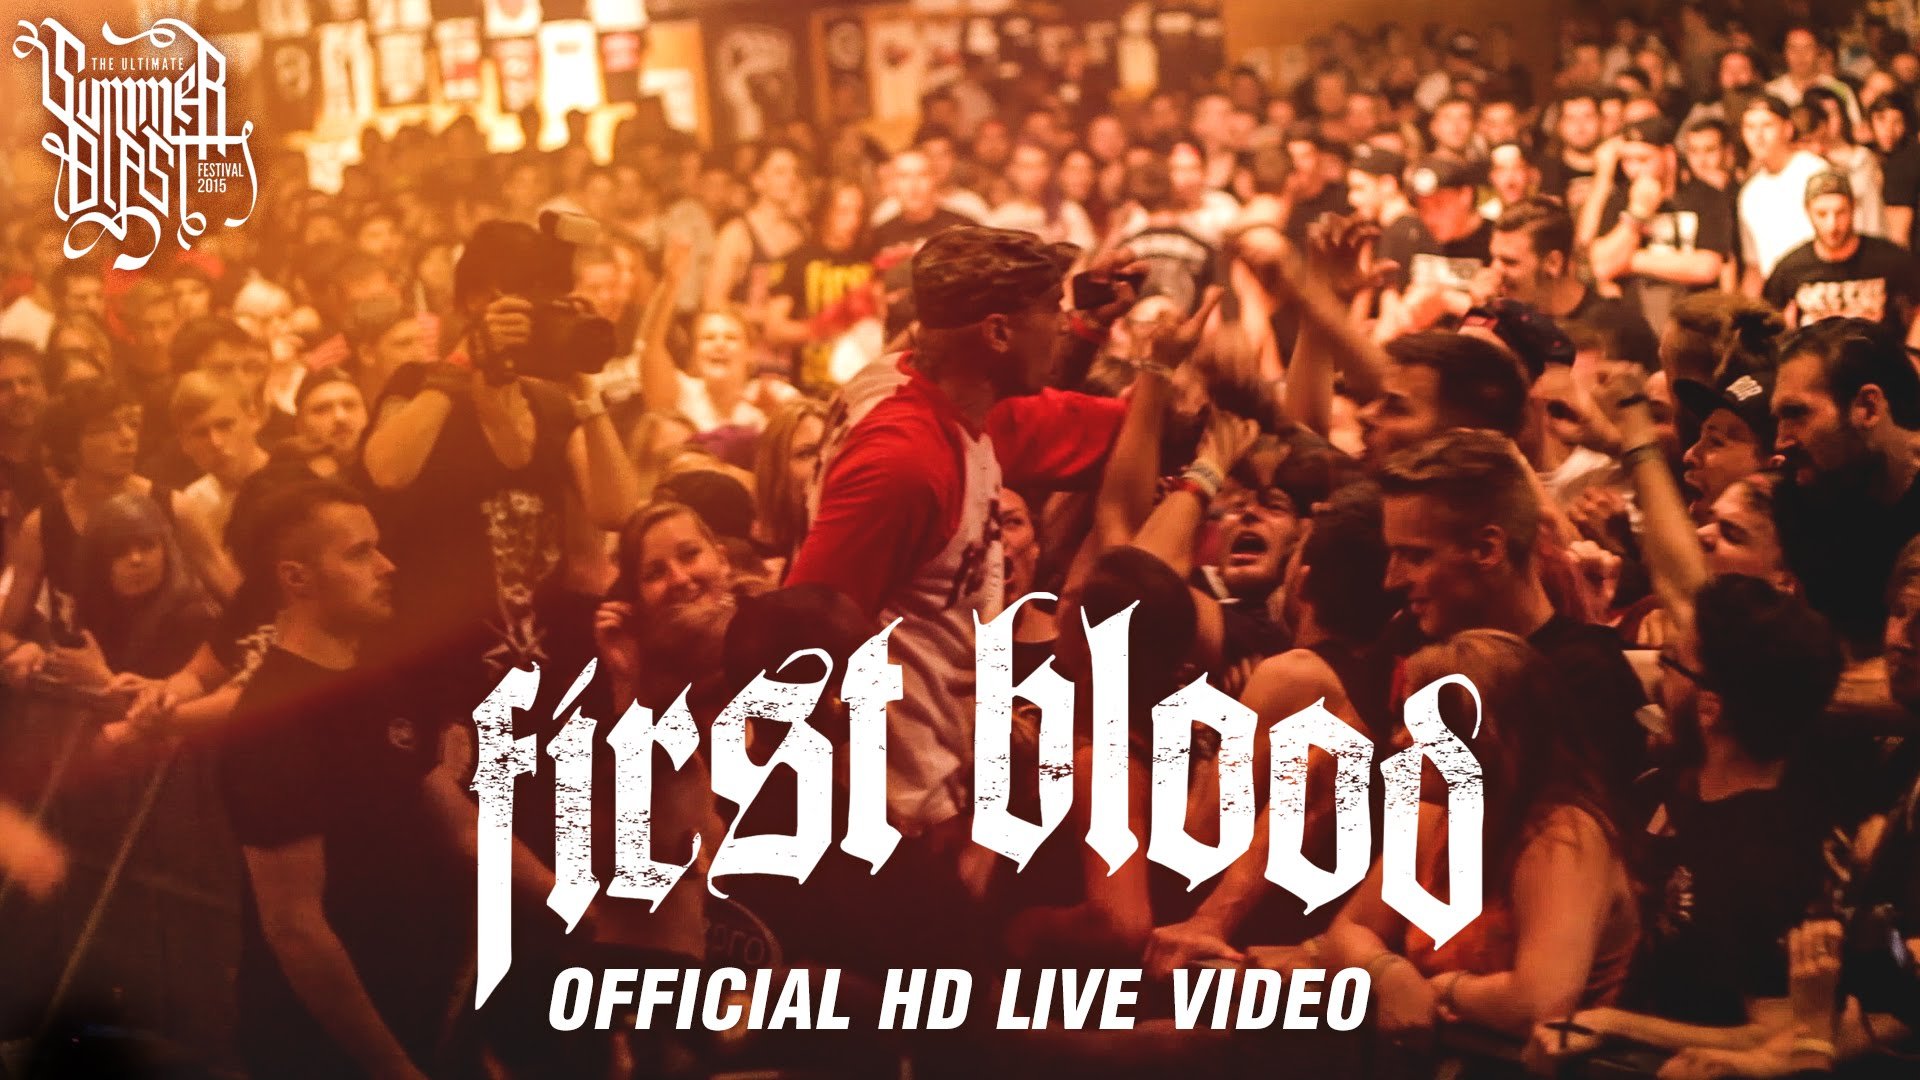 First Blood to perform entire 'Killafornia' album on upcoming tour